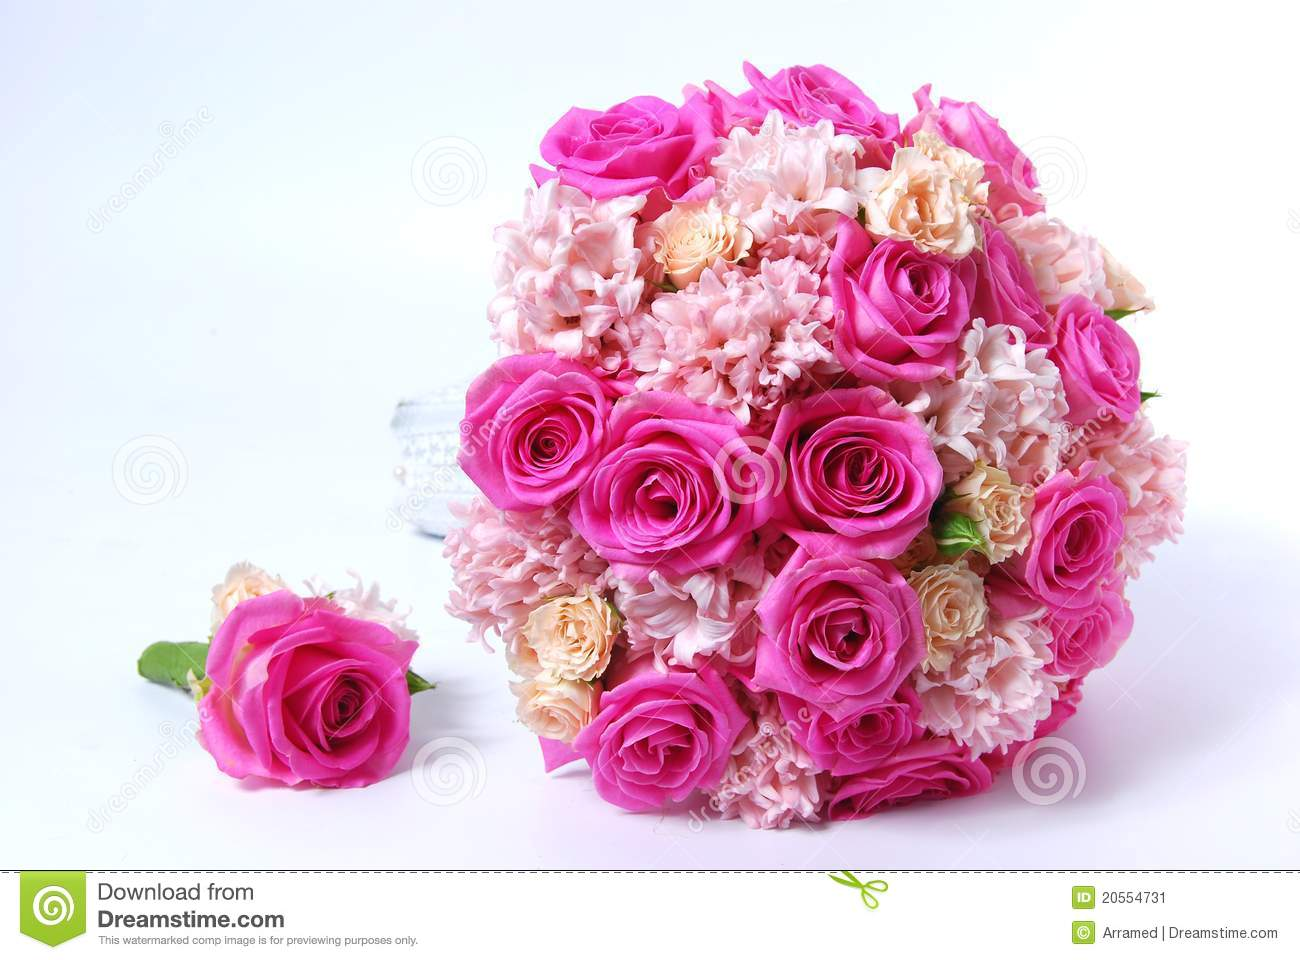 Bridal Bouquet With Pink Roses Stock Image - Image of pink, love ...